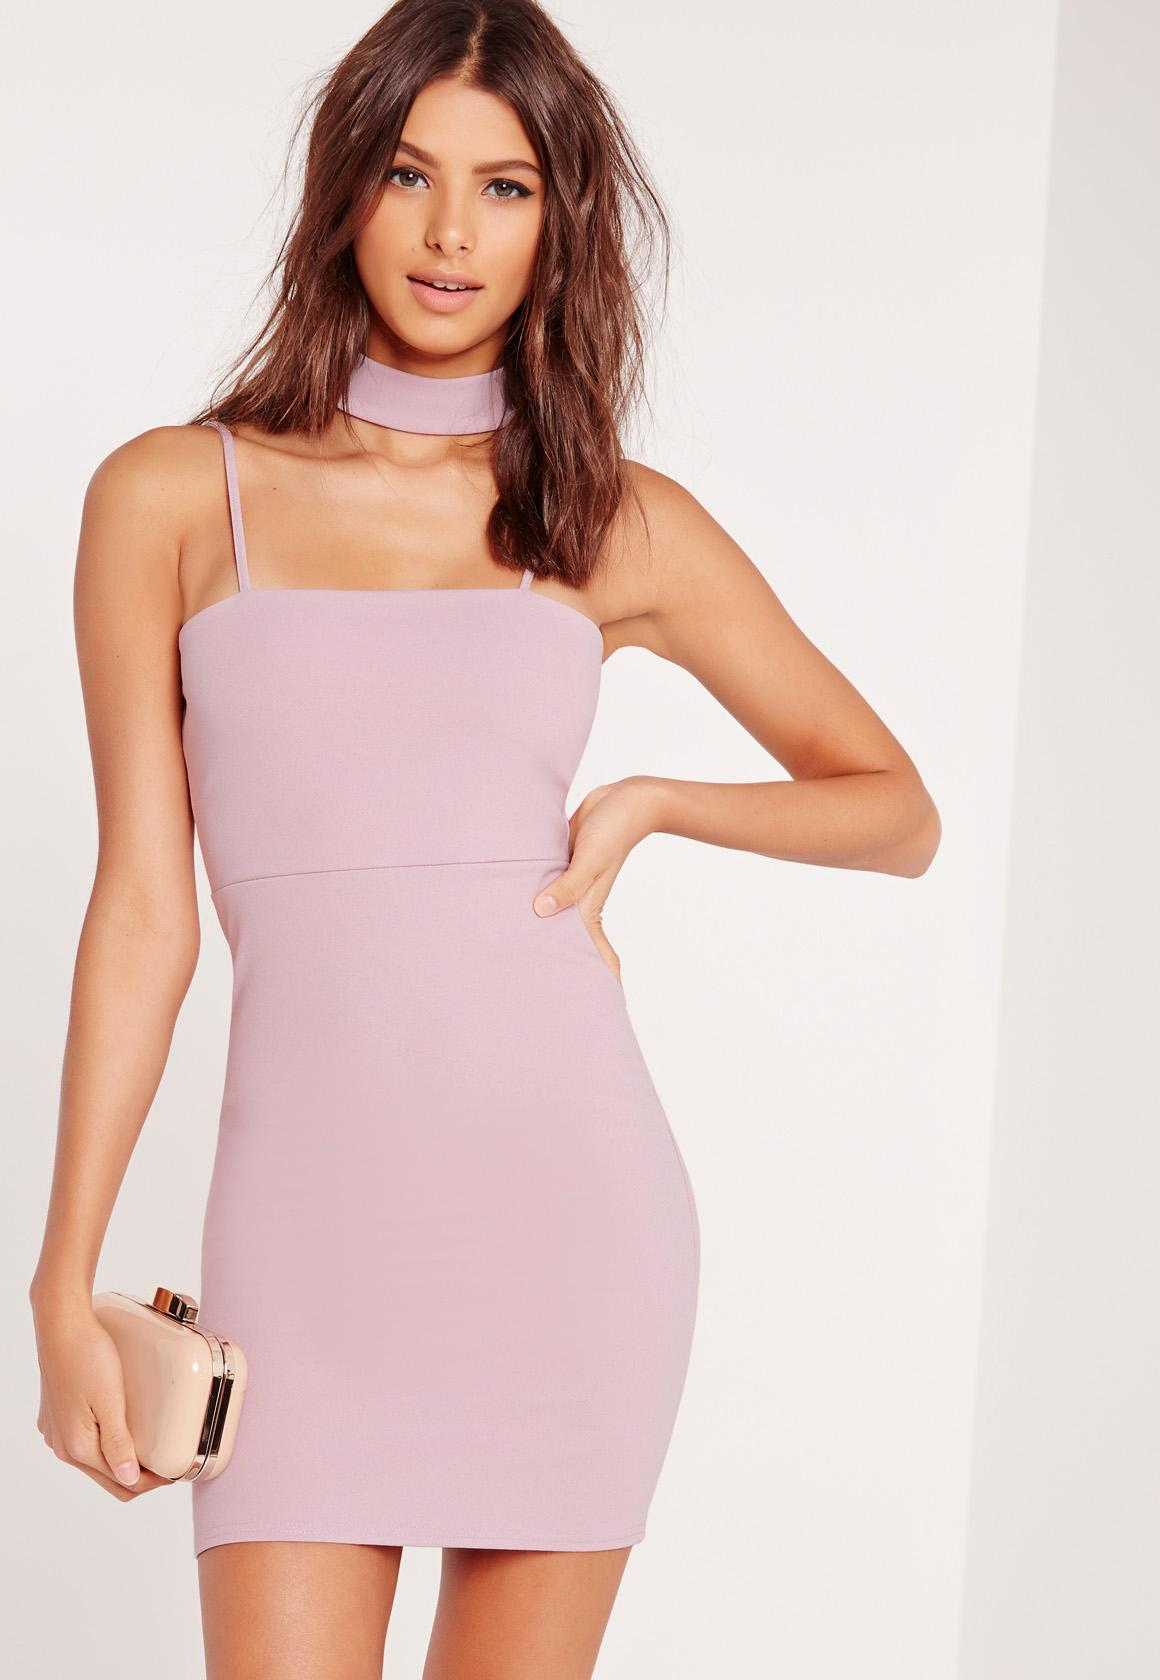 a6d7035d57 Lyst - Missguided Choker Neck Bodycon Dress Mauve in Pink